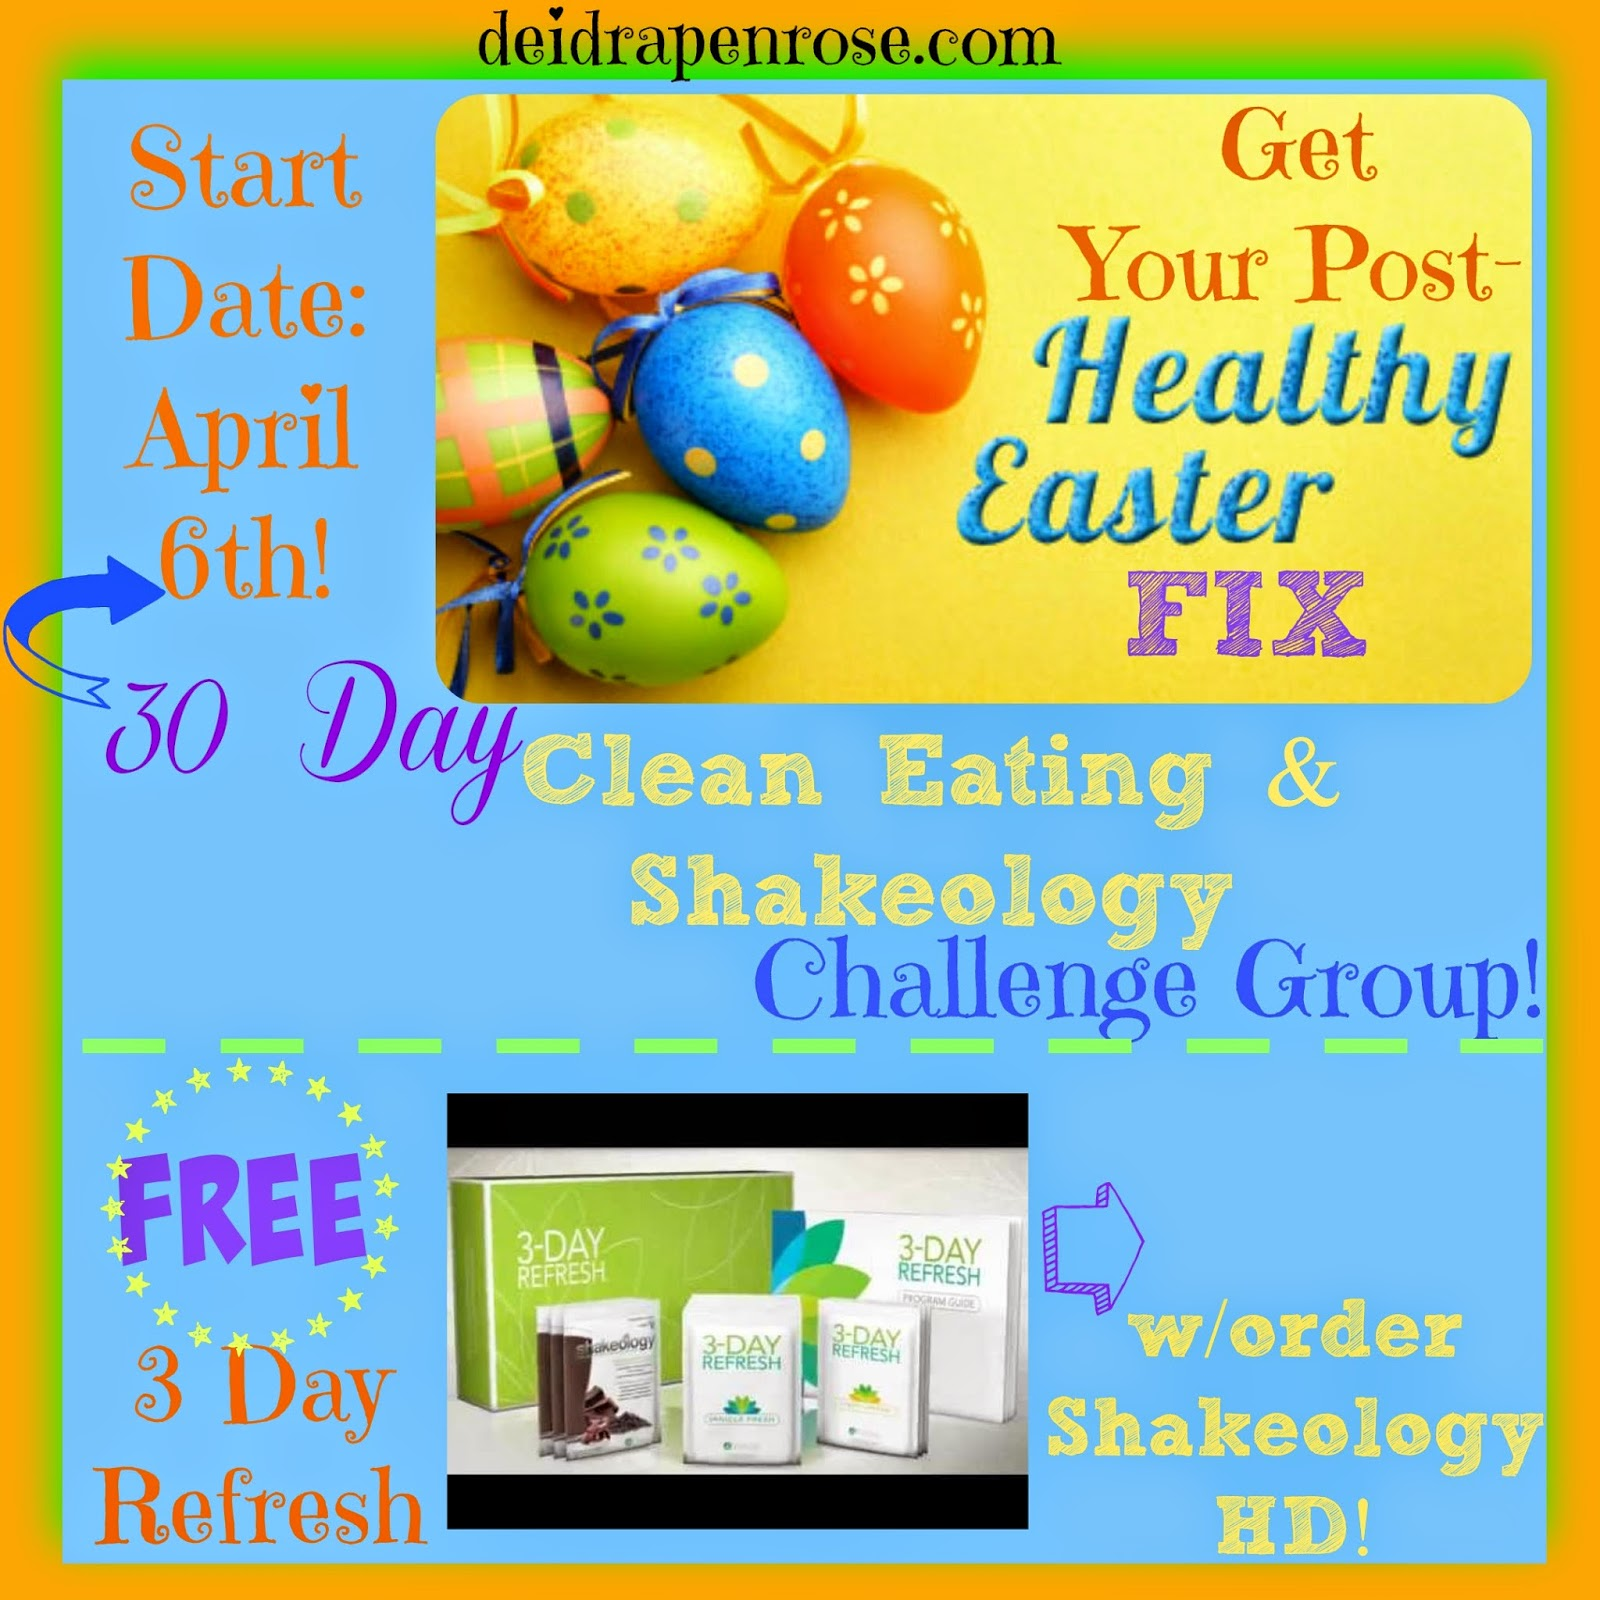 Deidra Penrose, Healthy Easter, clean eating challenge, 3 day refresh, clean eating challenge, healthy tips after easter, healthy tips after holidays,  healthy eating tips, shakeology recipes, 30 day fitness challenge, post easter healthy group, support group, challenge group, online support fitness group, team beachbody challenge, top team beach body coach harrisburg pa, top fitness coach pa, fitness motivation after holidays, weight loss summer, summer body,